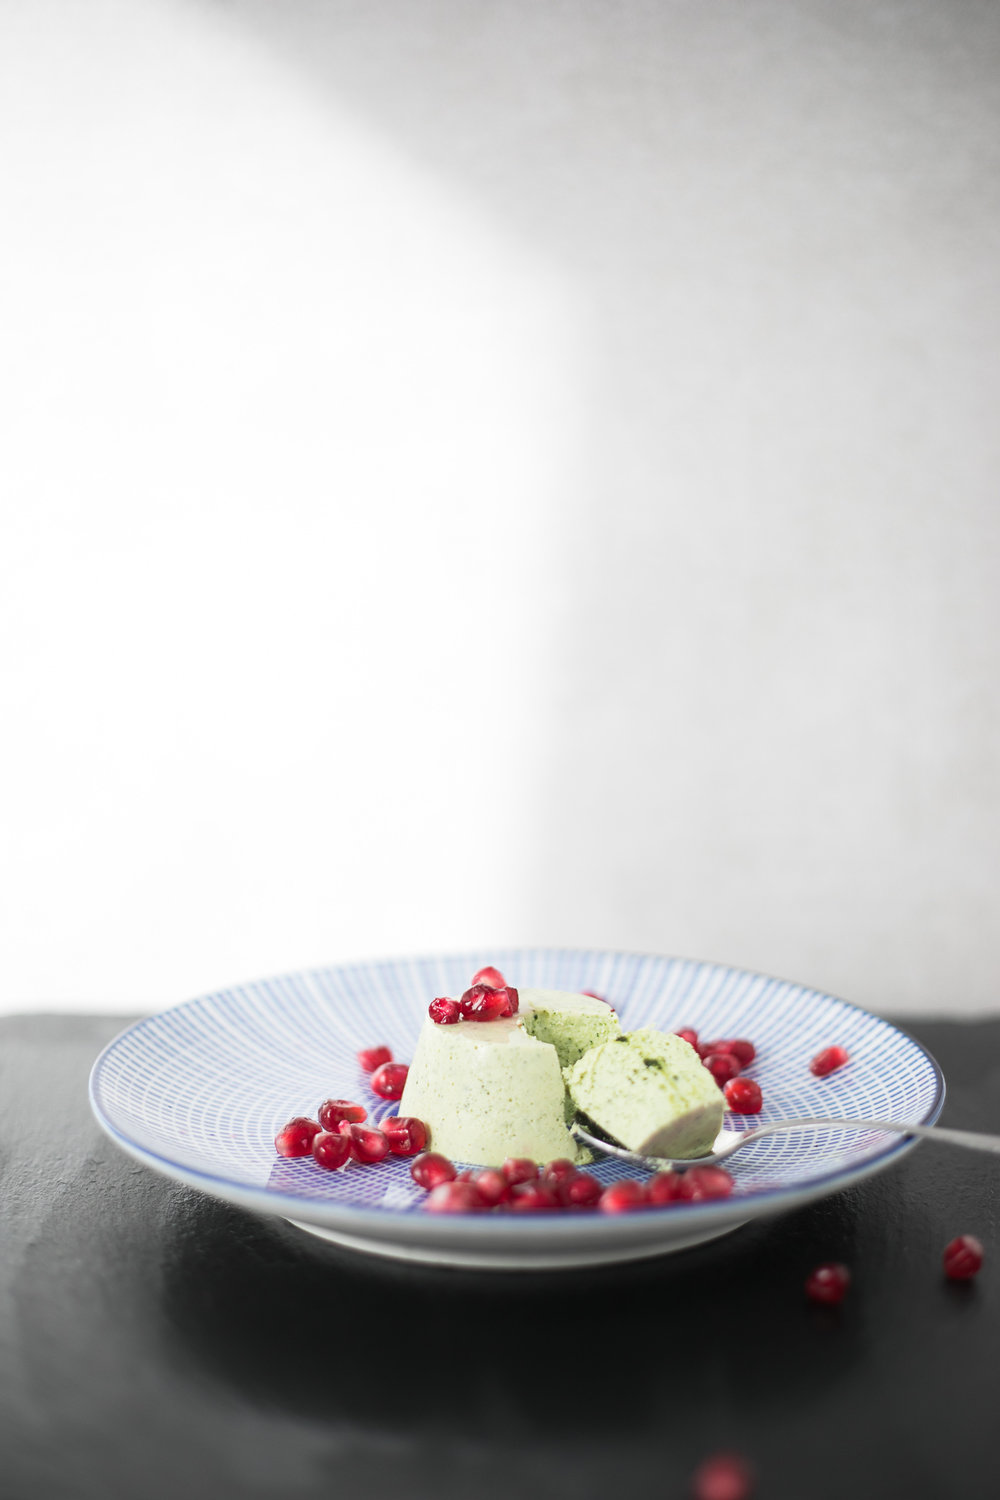 Chloe Edwards food photography Bristol matcha green tea panna cotta with pomegranates heapwell superfoods 2--3.jpg